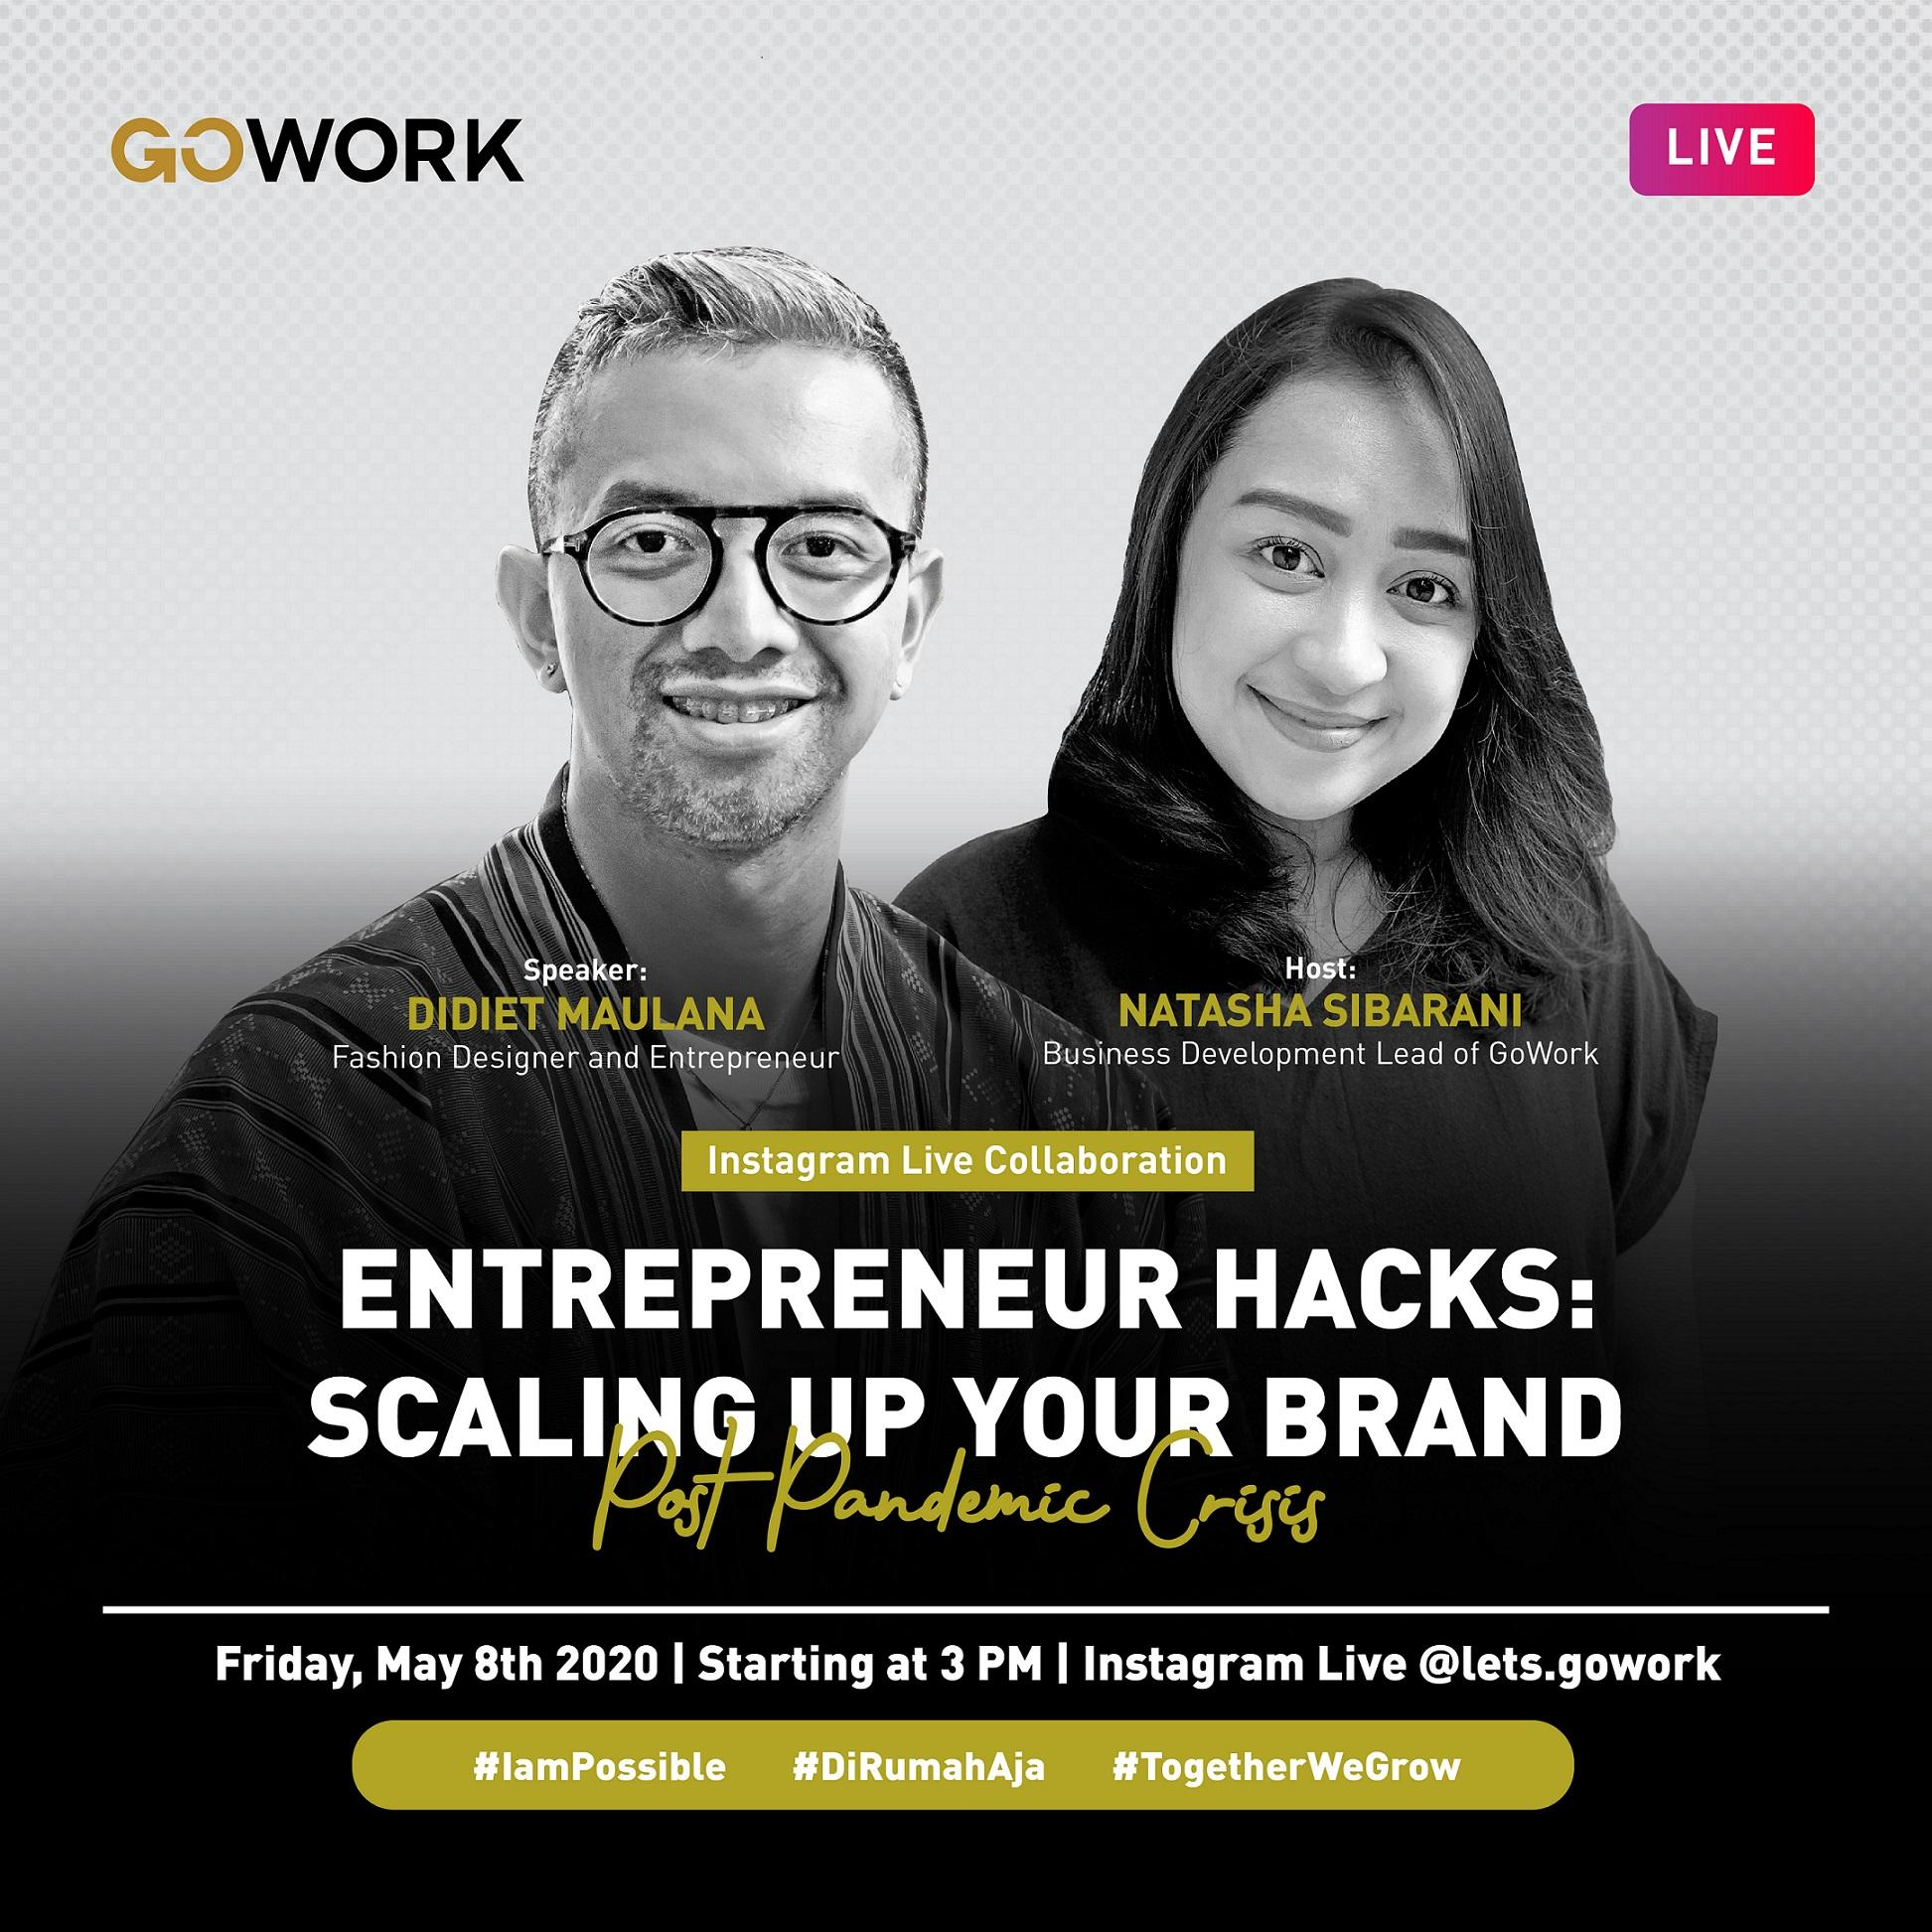 Entrepreneur  Hacks: Scaling Up Your Brand Post Pandemic Crisis